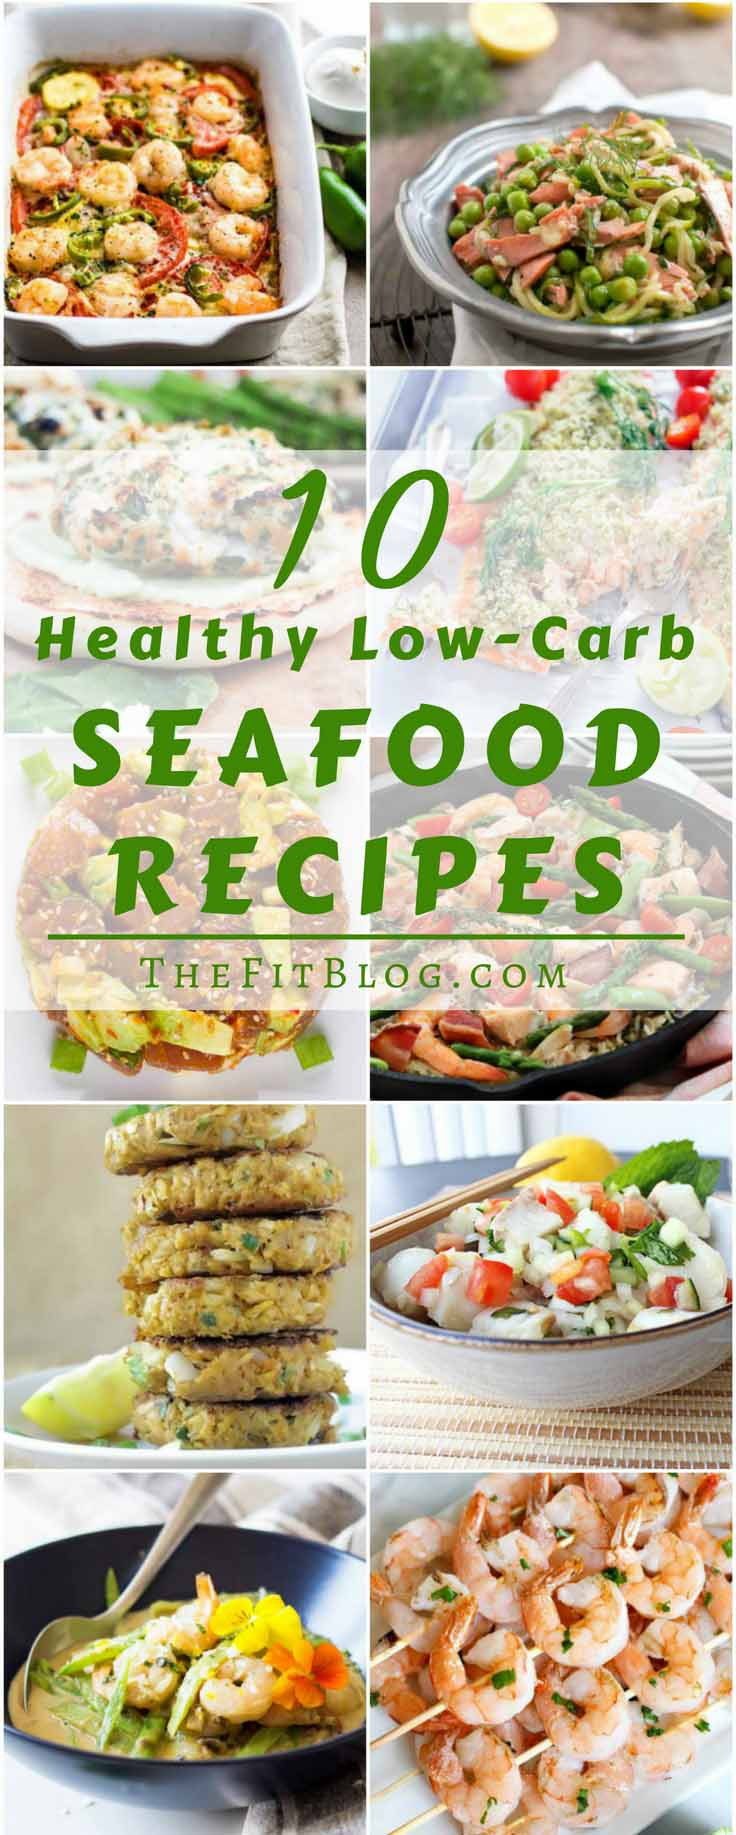 Low Carb Fish Recipes  10 Healthy Low Carb Seafood Recipes